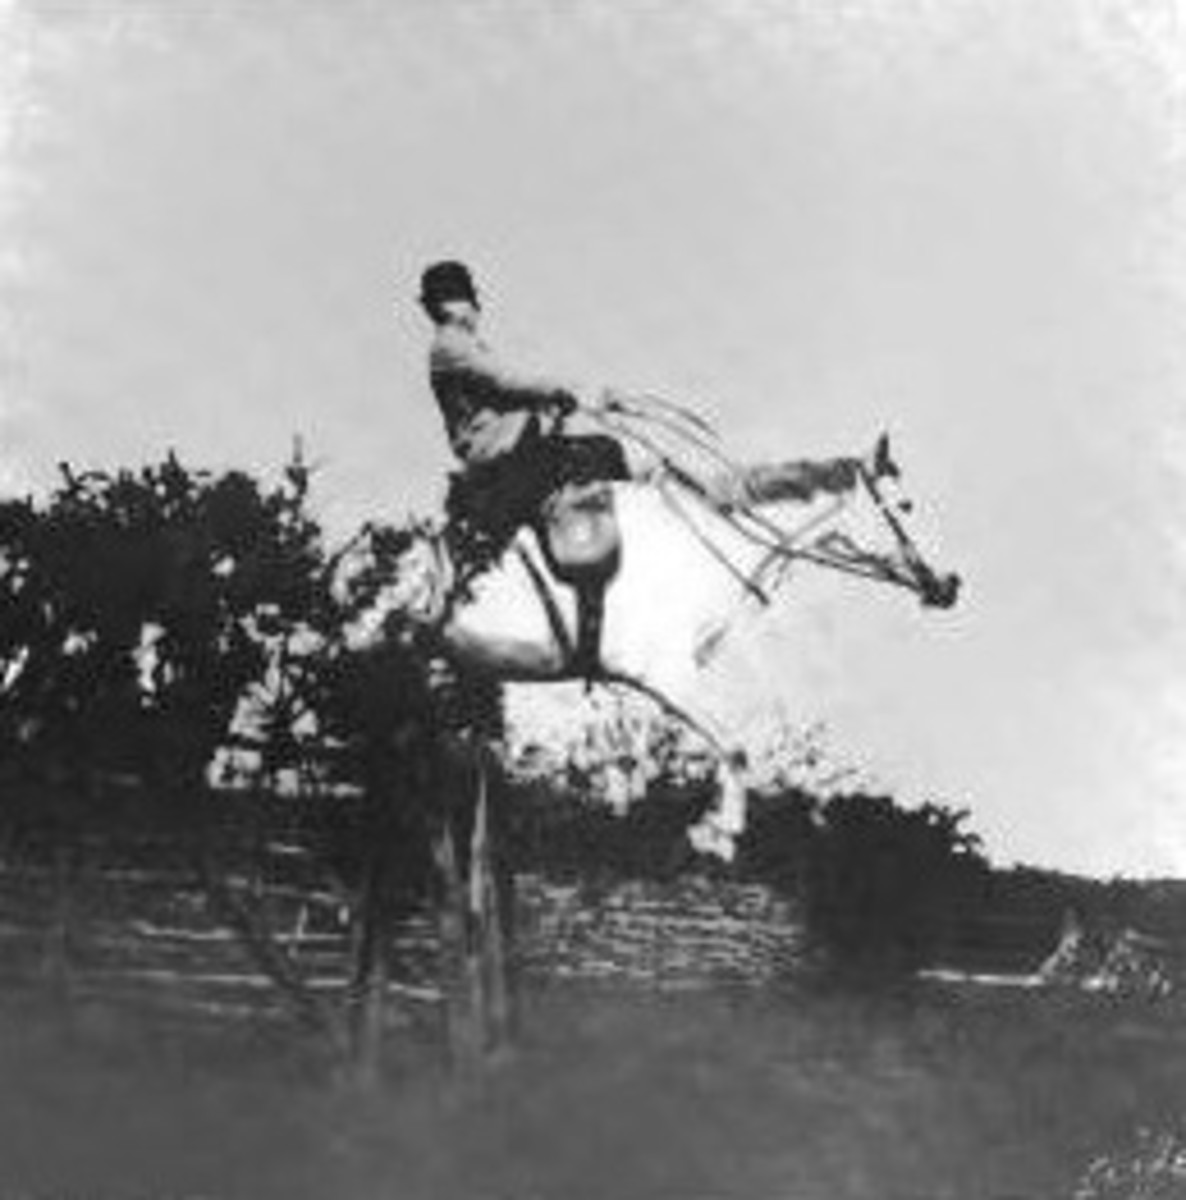 Man riding sidesaddle (1903) -- public domain image